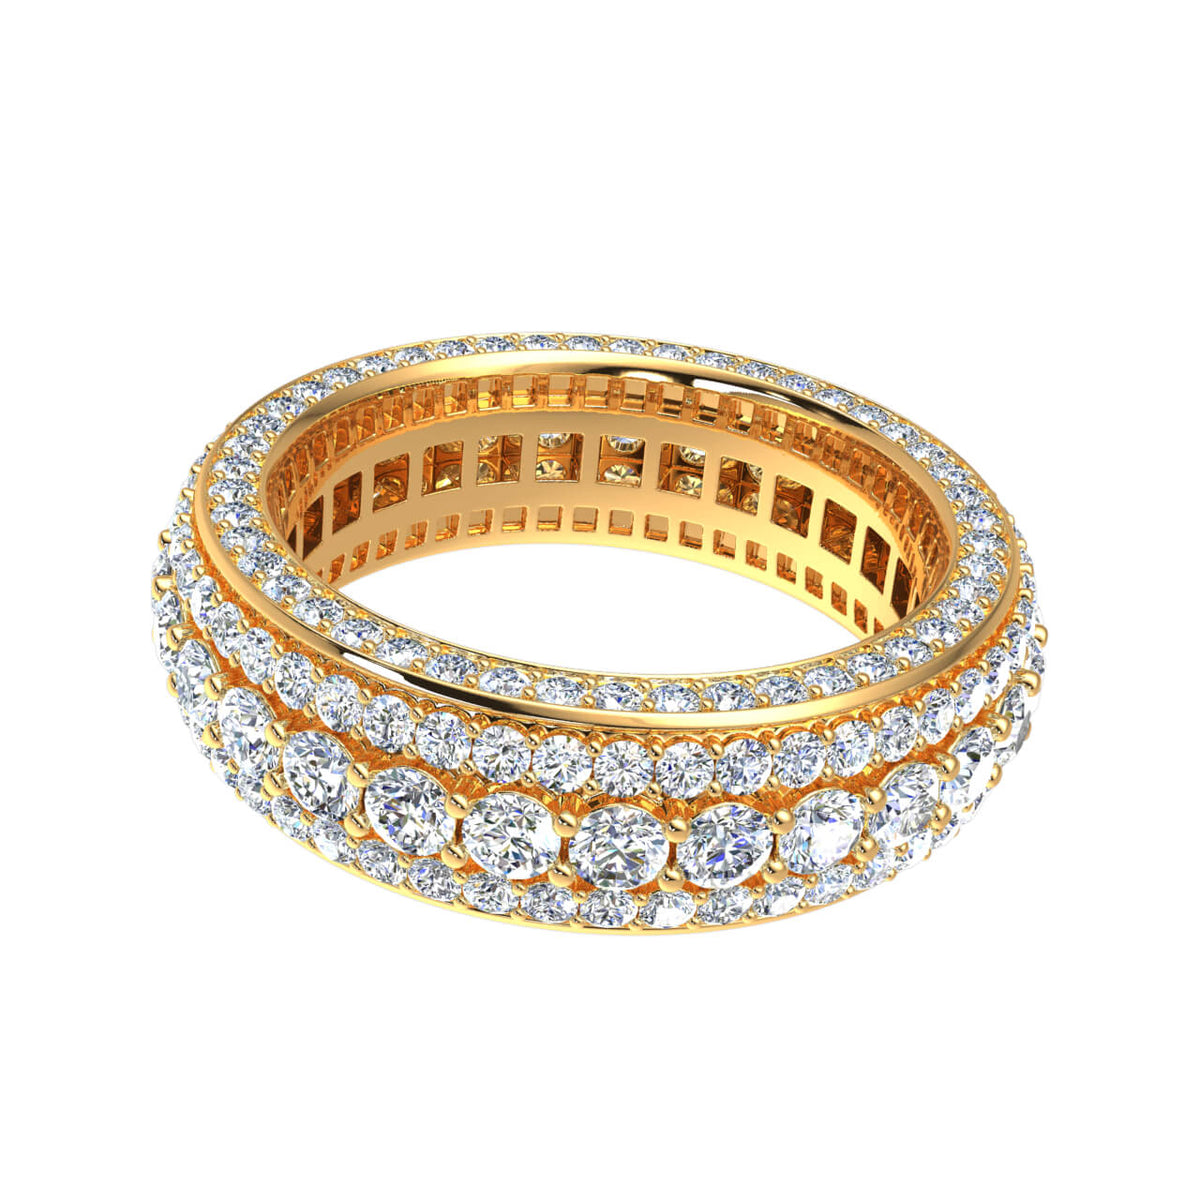 5.25 Ct Natural GH Si2 Diamond 5 Row Men's Eternity Wedding Band in 14k Gold